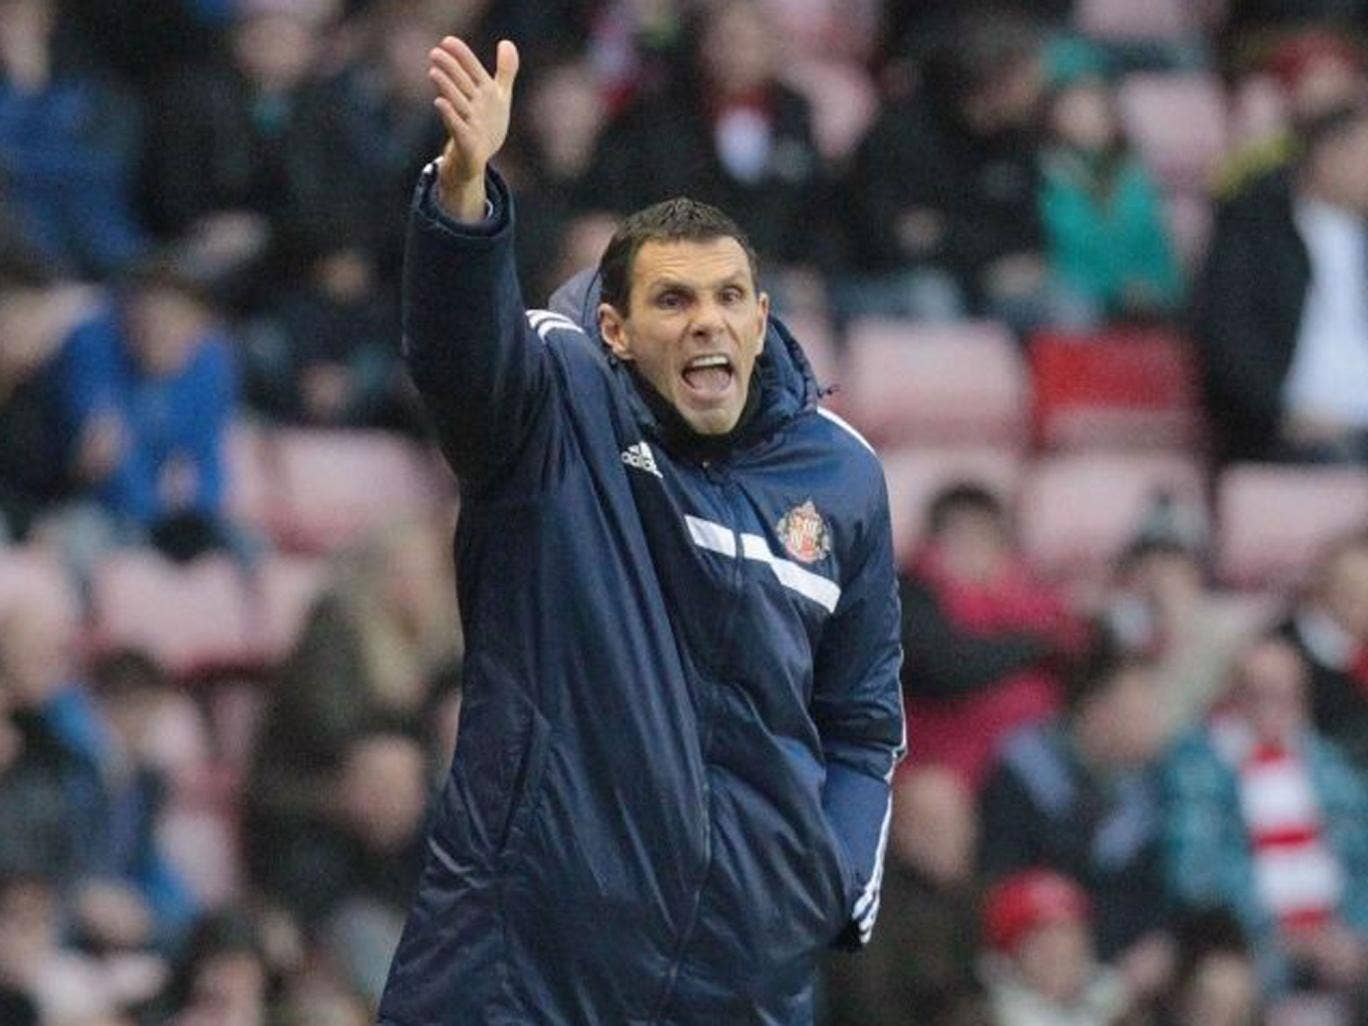 Sunderland manager Gus Poyet, pictured here at an earlier match, refused to comment on the decision